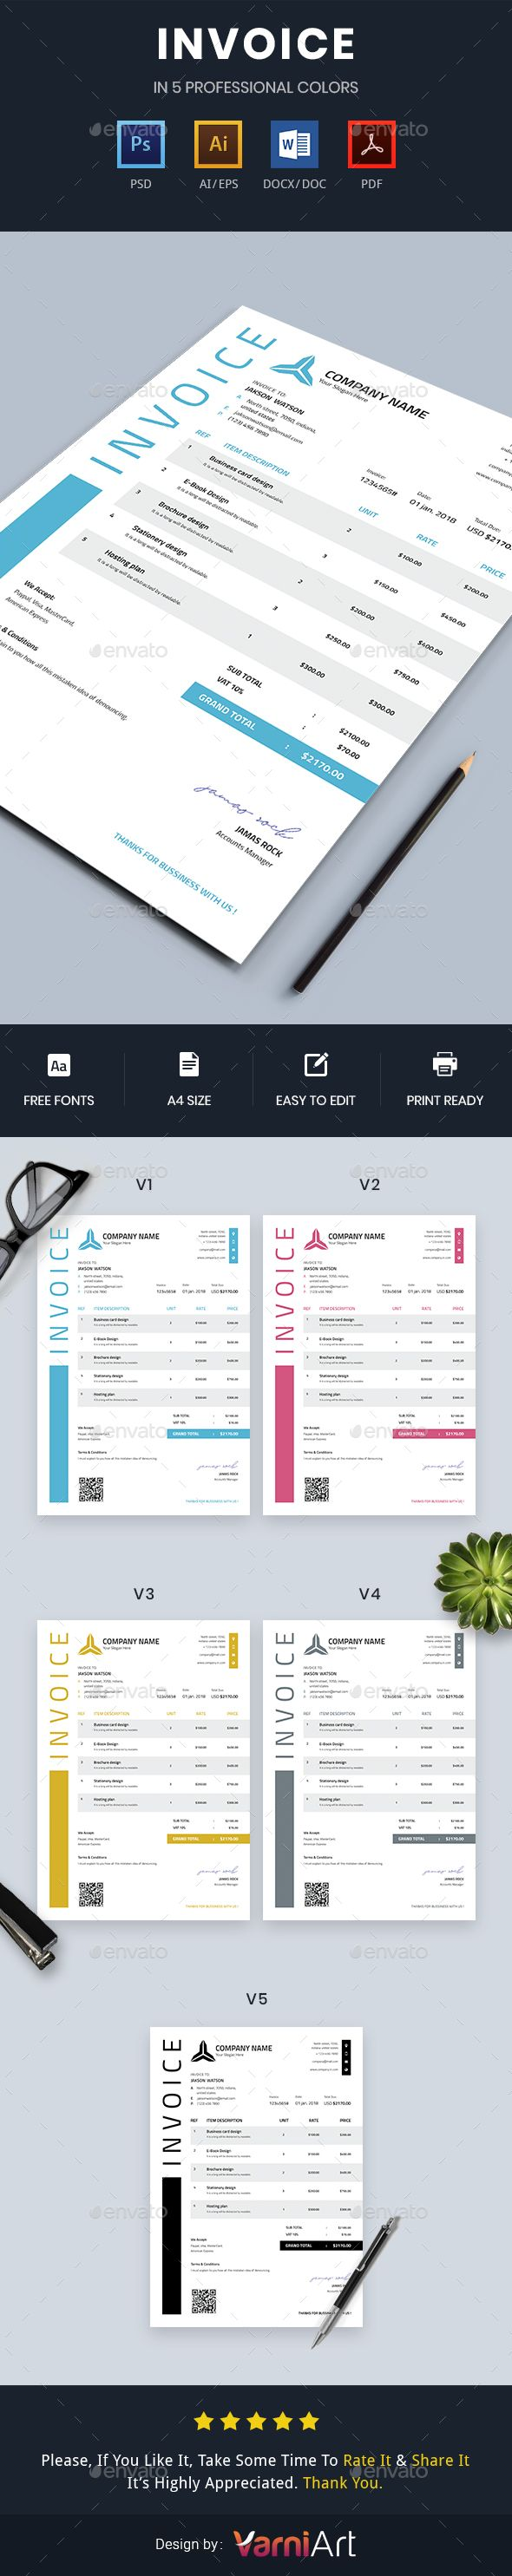 Invoice Page 214 Best Invoice Templates Excel Images On Pinterest  Invoice .